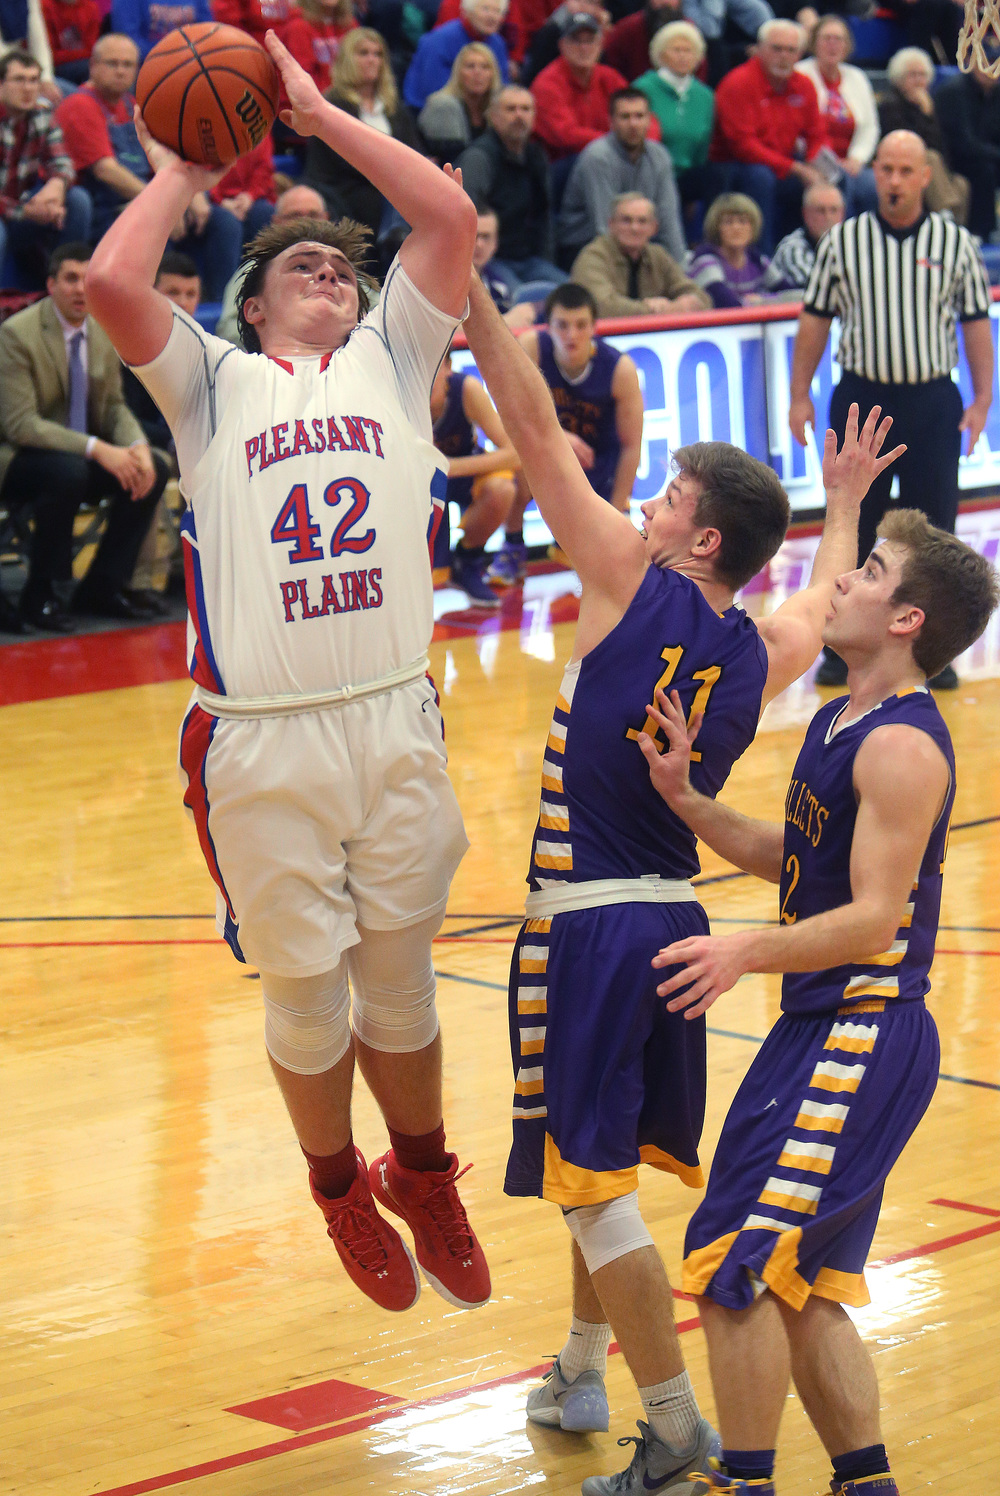 Plains player Nik Clemens goes airborne while putting up a shot. David Spencer/The State Journal Register